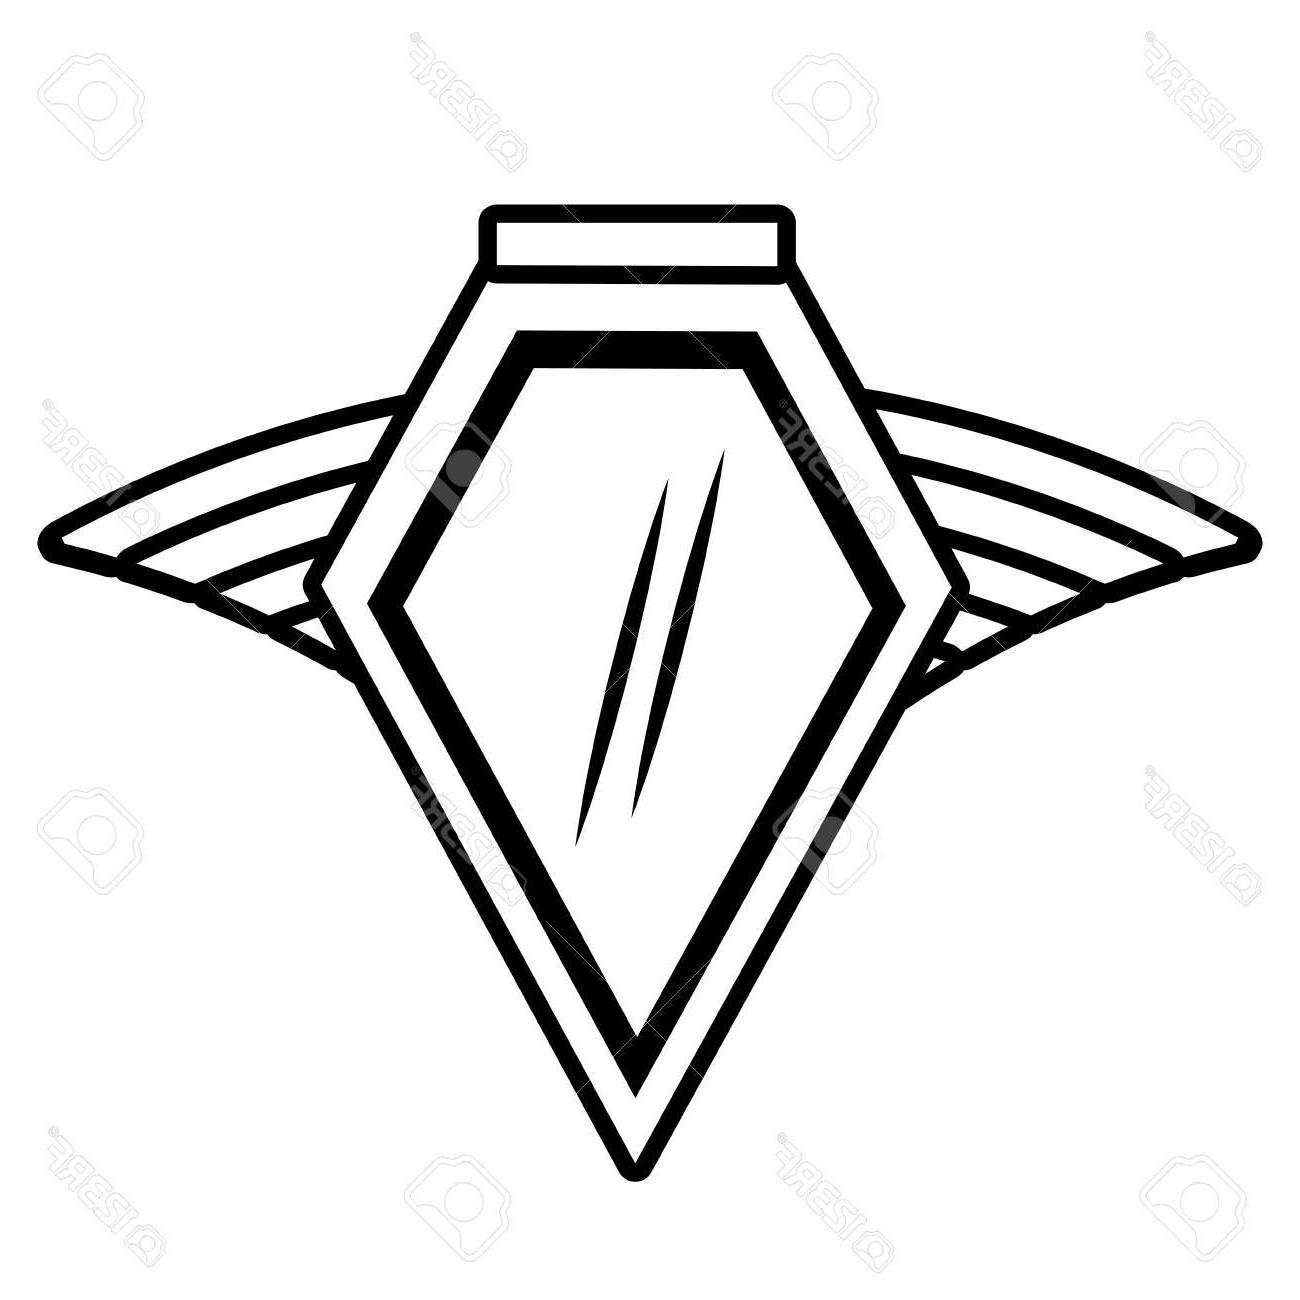 1300x1300 Top Shield Insignia Military Winged Outline Empty Vector